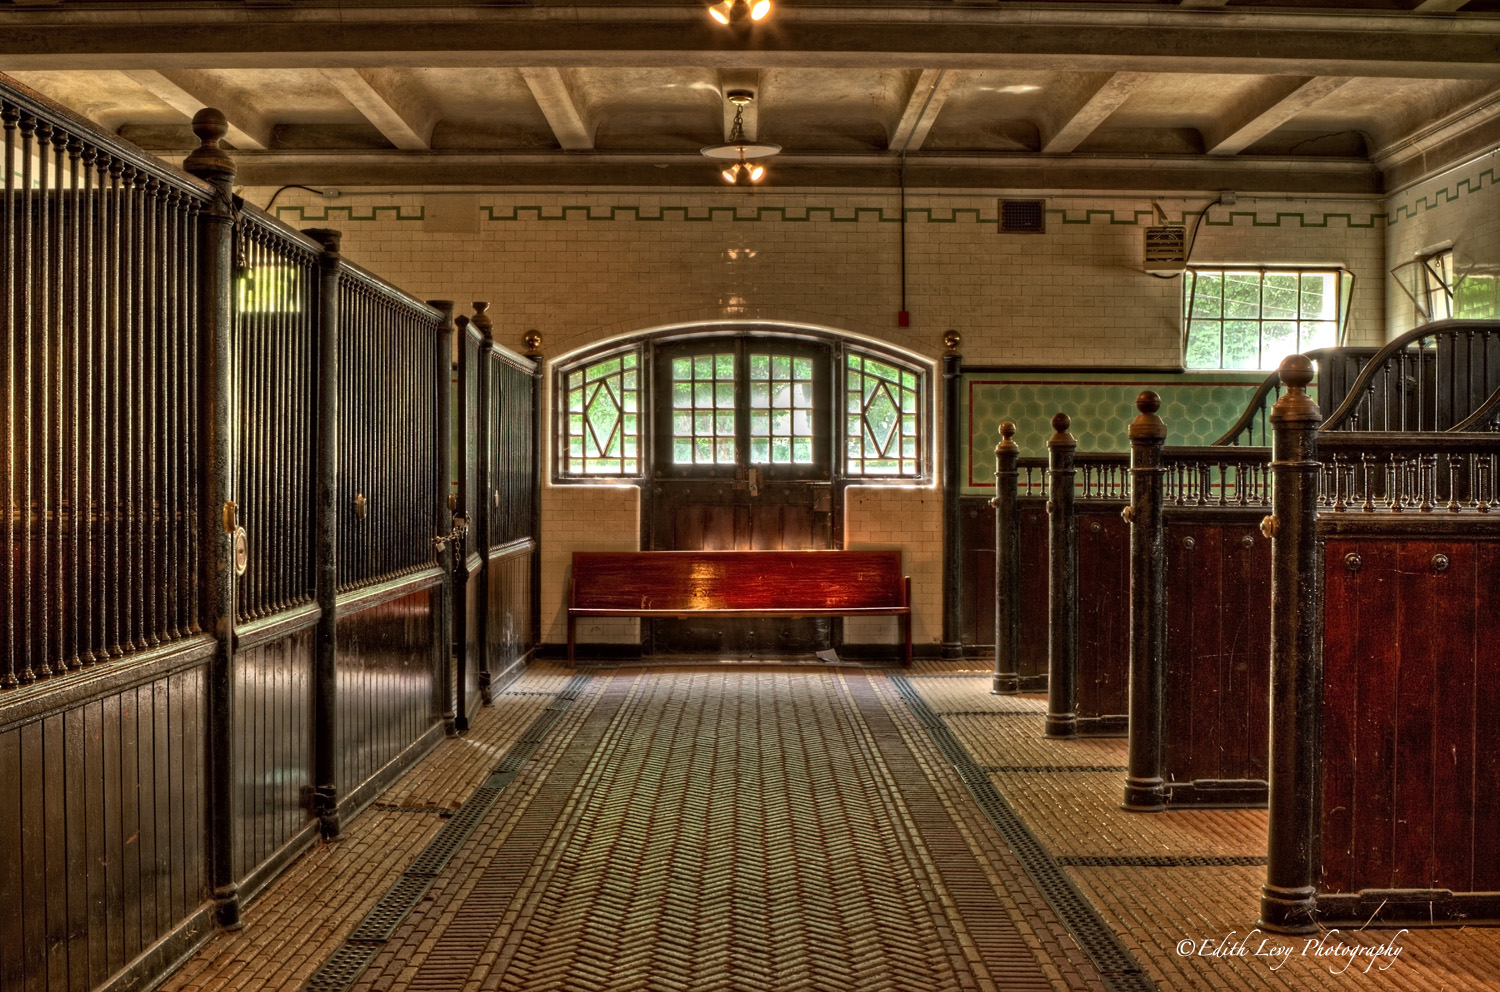 The stables at casa loma edith levy photography for Casa loma mansion toronto